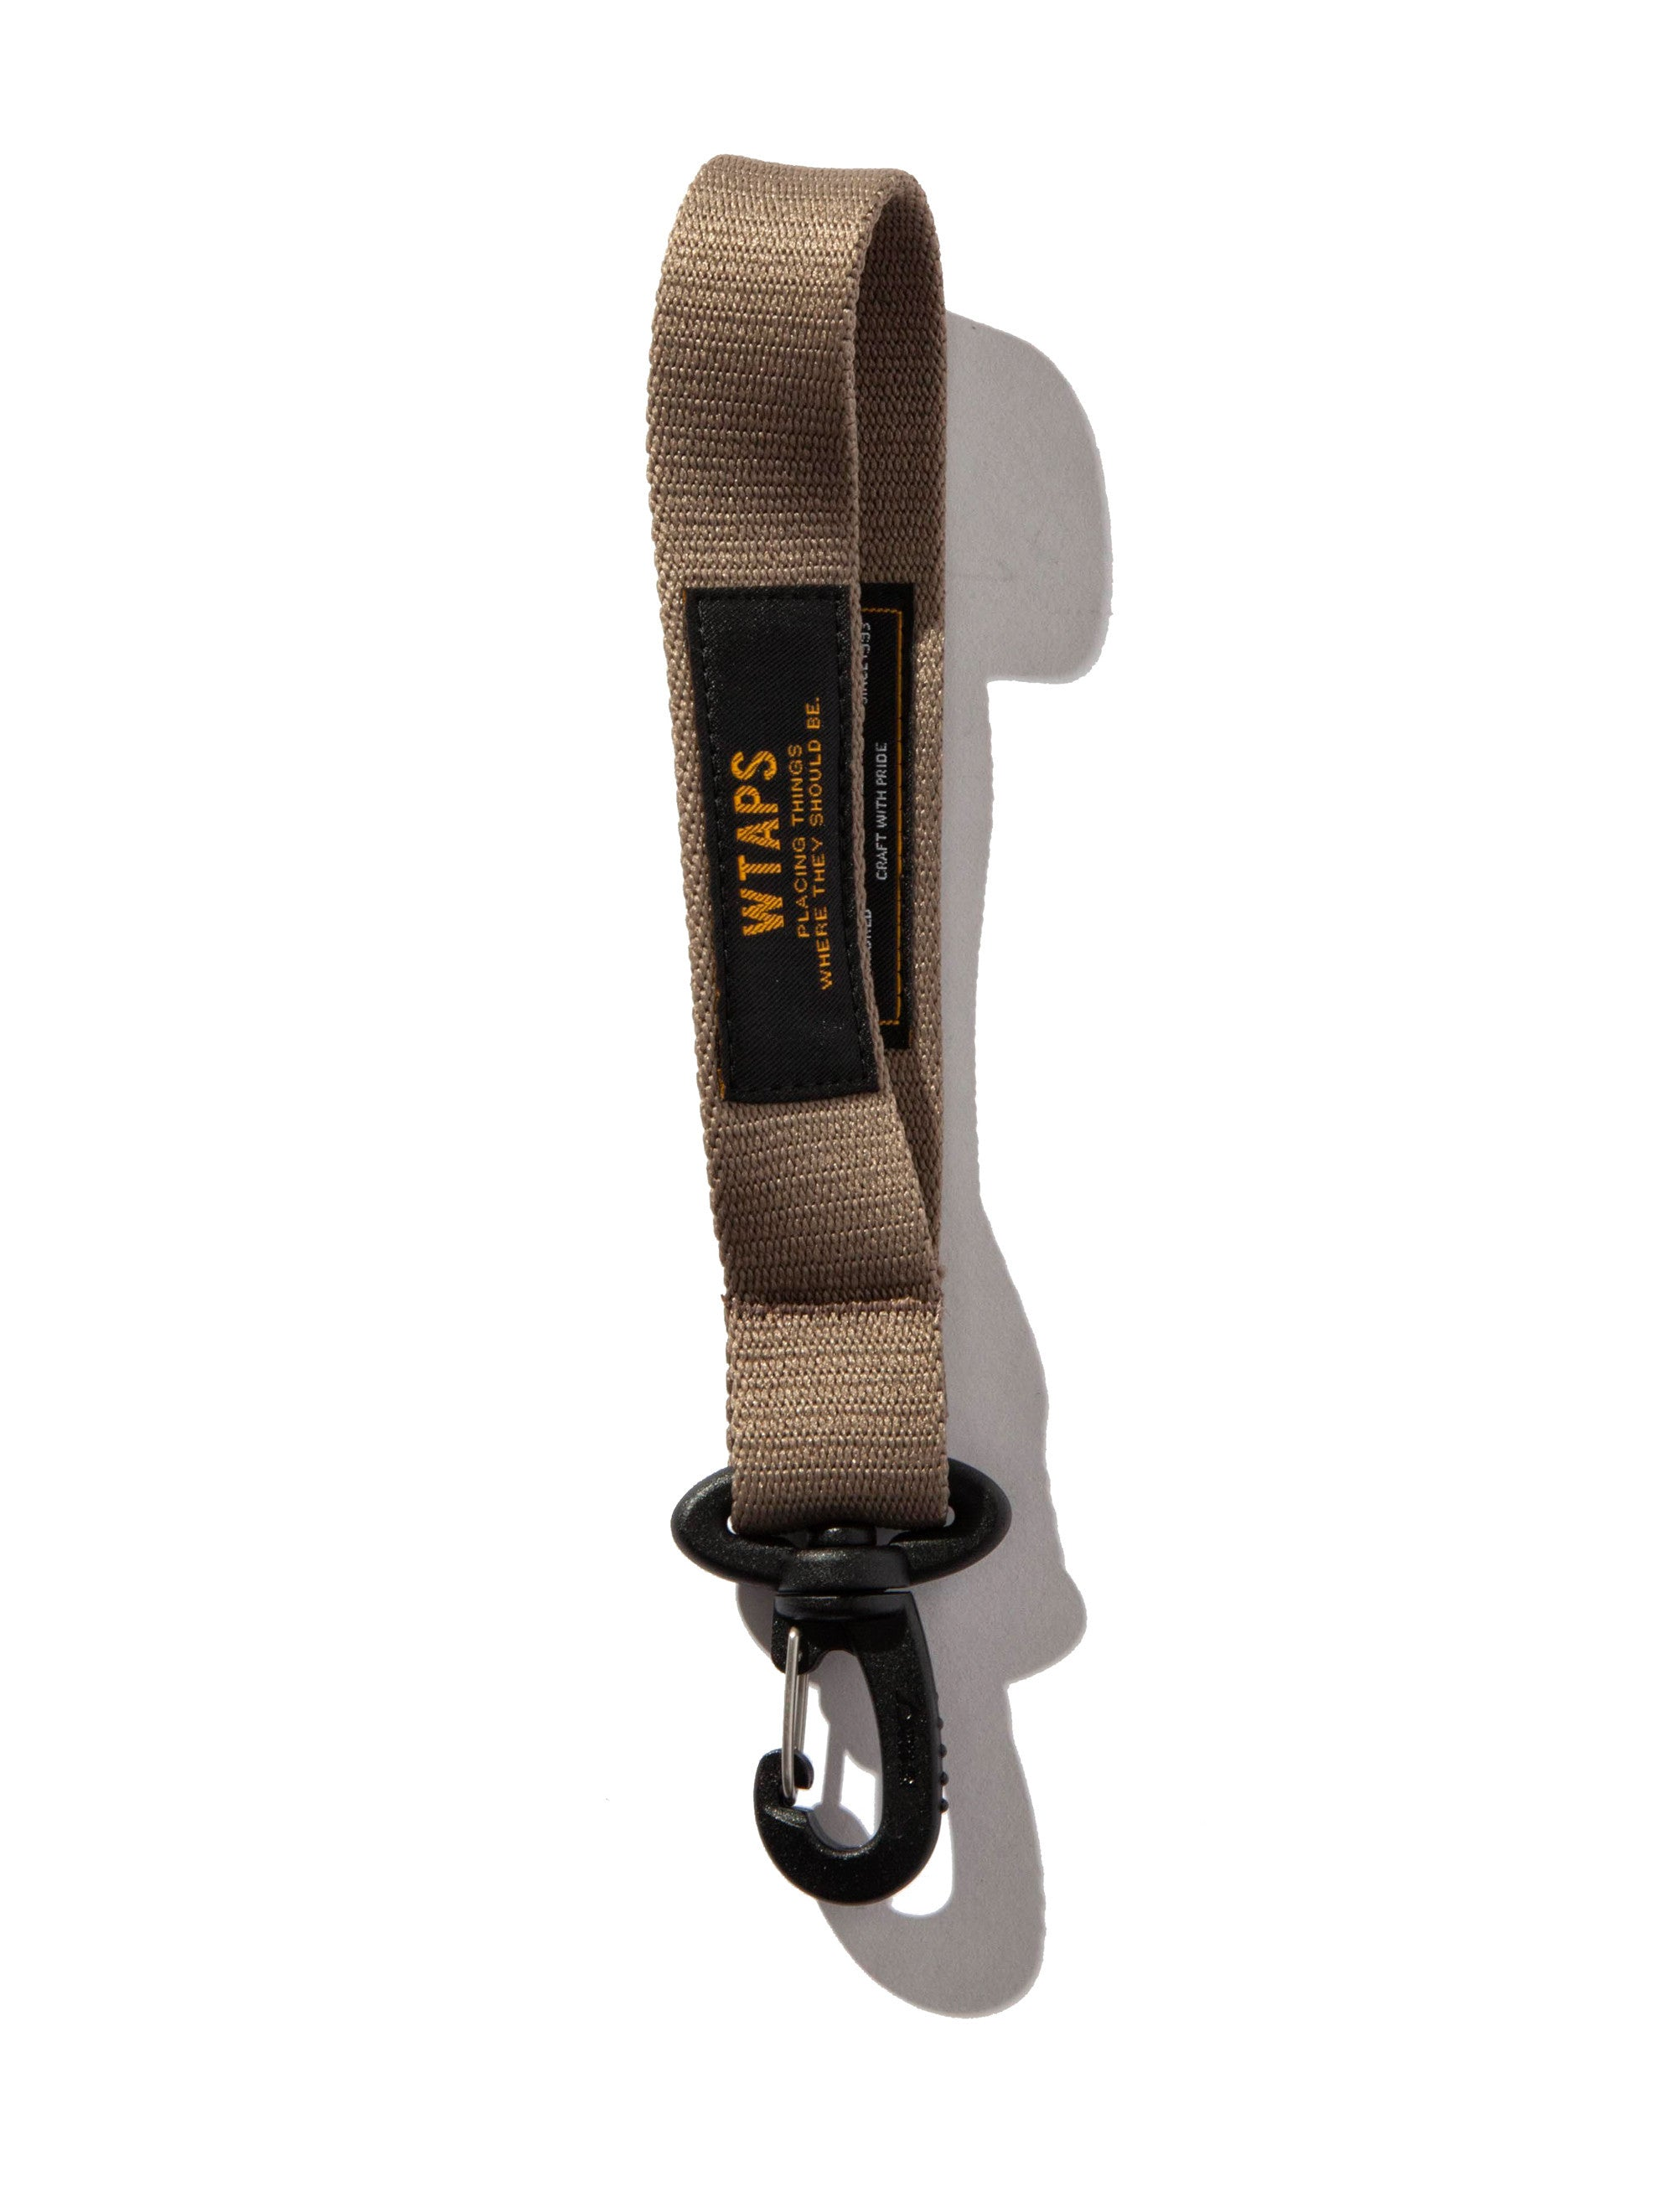 Olive Drab Rein Key Holder 2